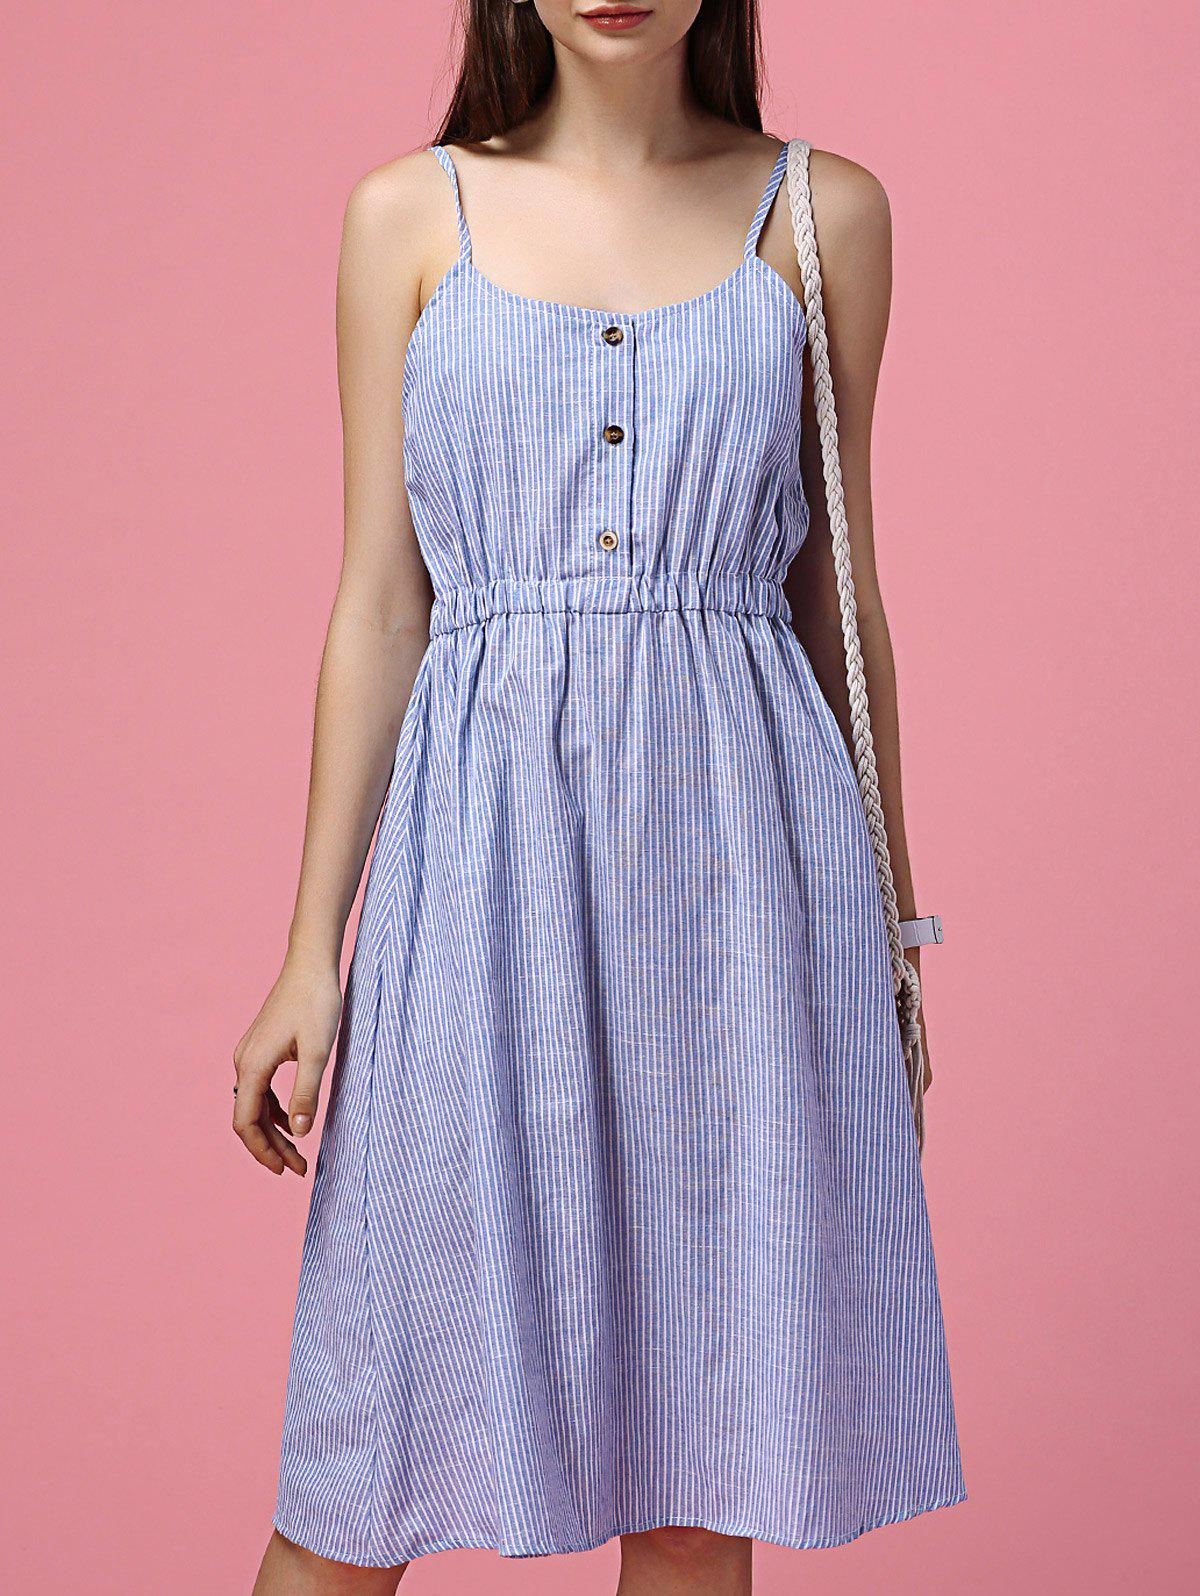 Refreshing Spaghetti Strap Striped Waist-Controlled Dress For Women - LIGHT BLUE ONE SIZE(FIT SIZE XS TO M)